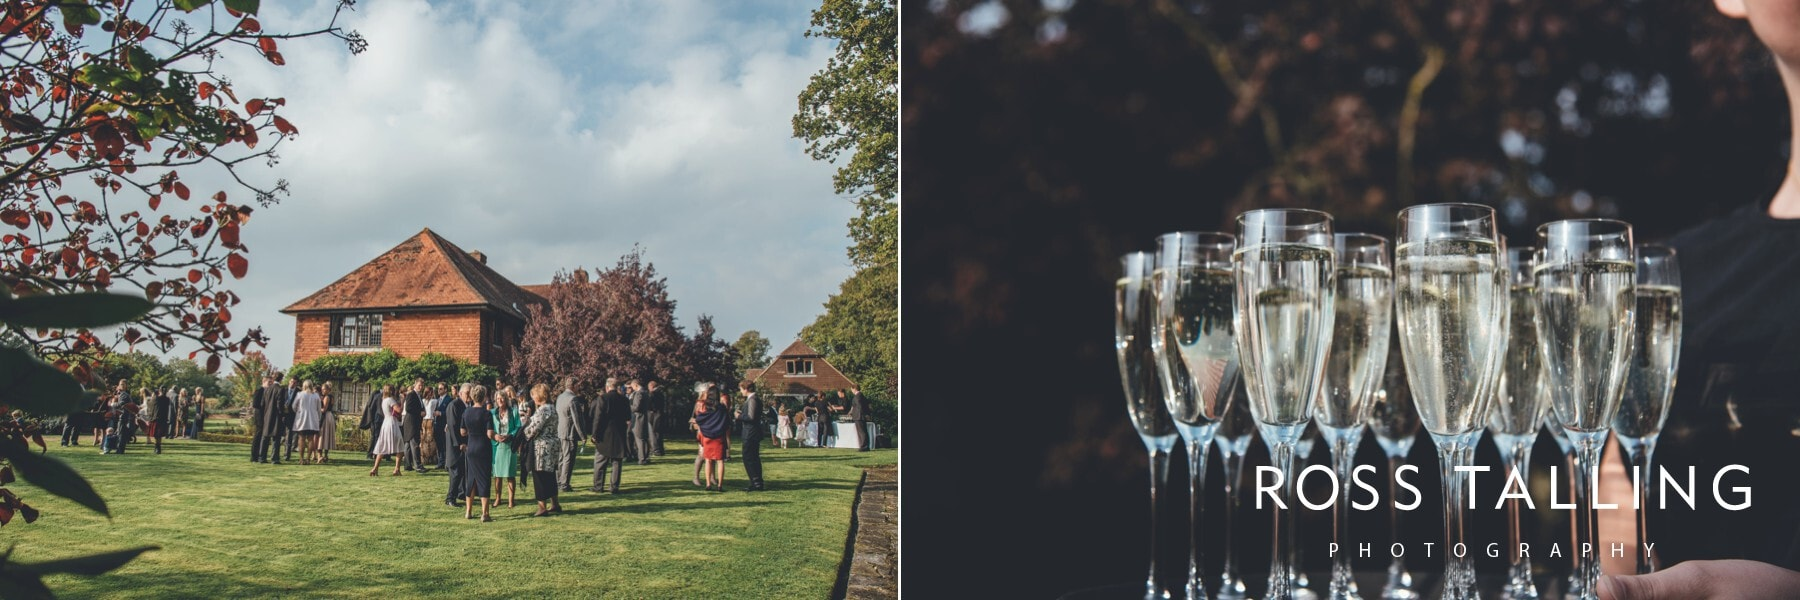 Sussex Wedding Photography by Ross Talling_0074